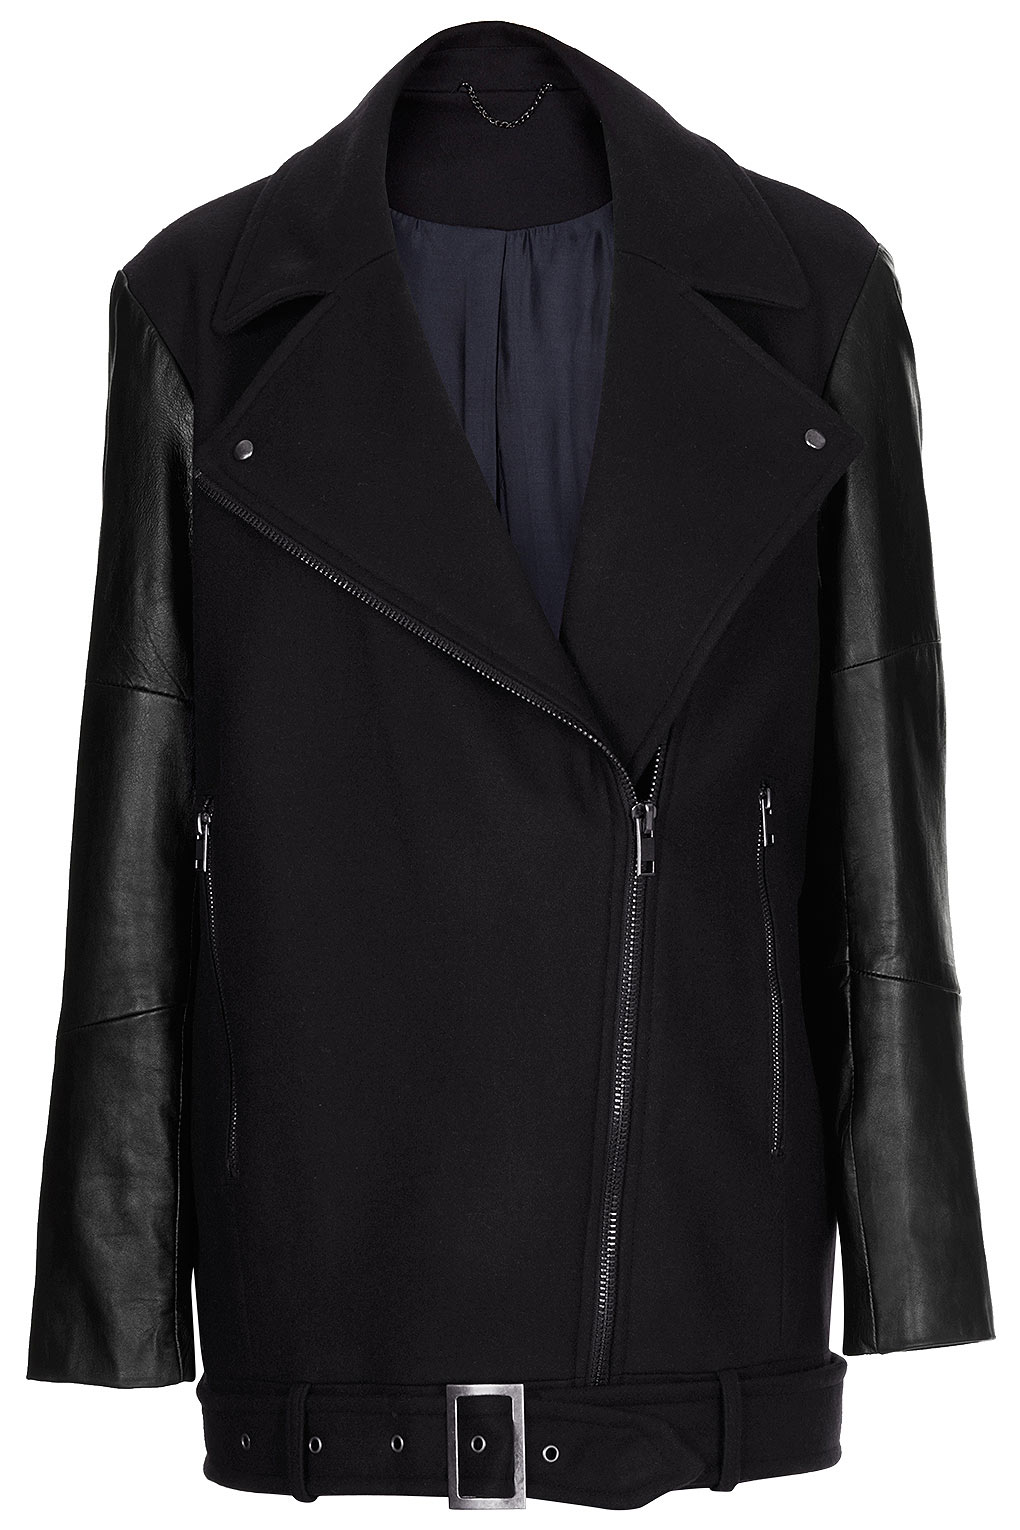 Topshop leather jackets